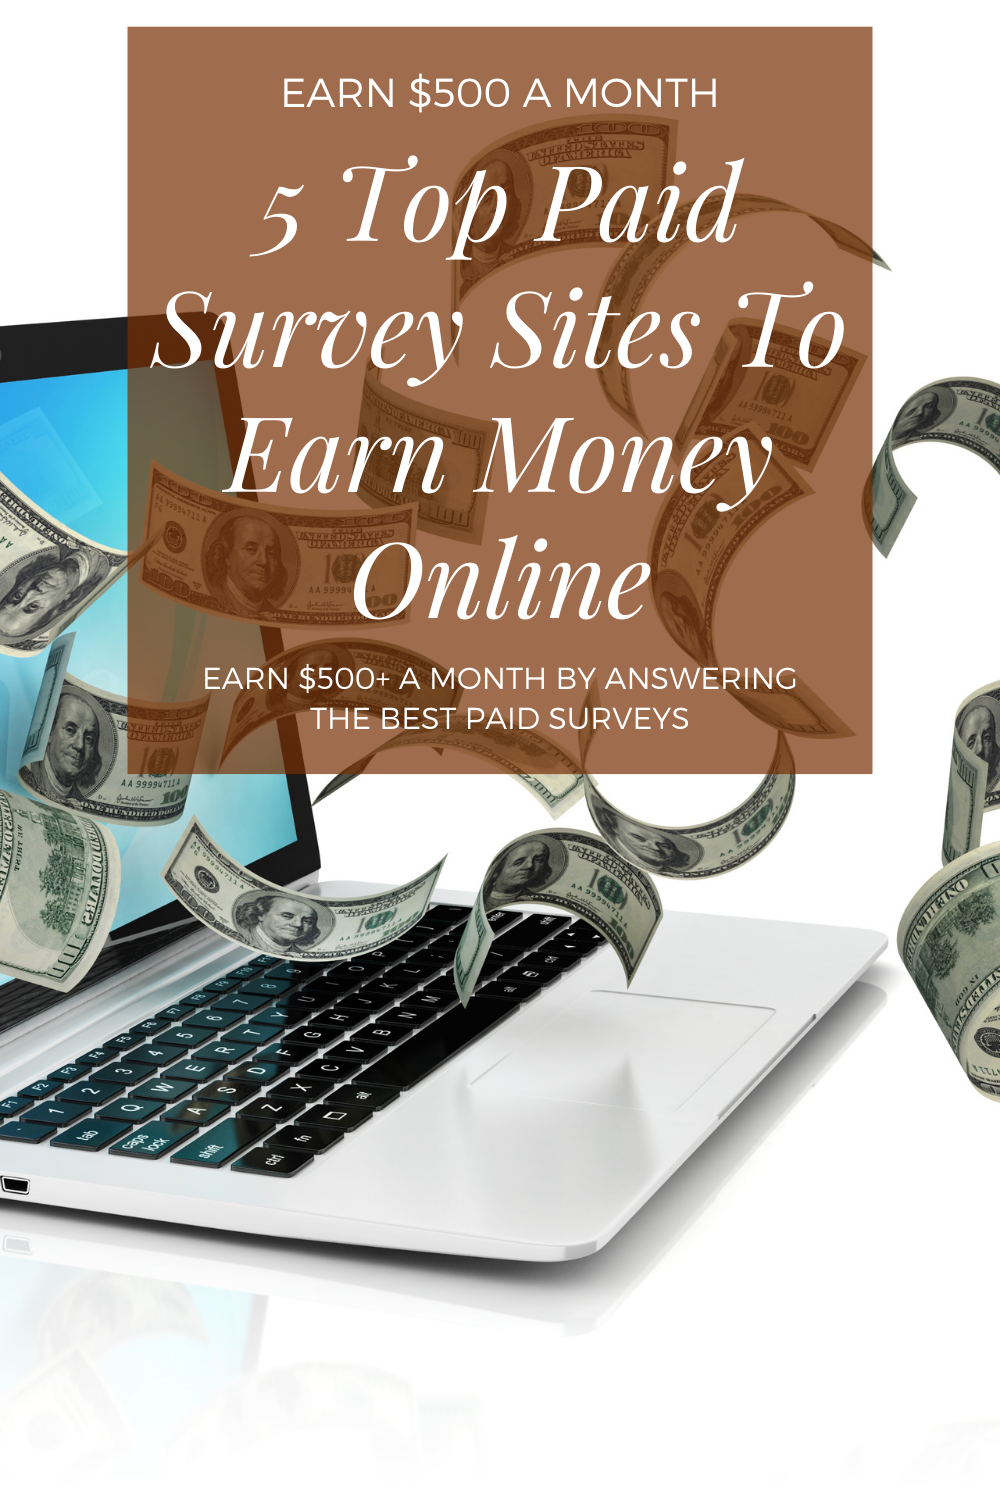 5 Top Paid Survey Sites To Earn Money Online